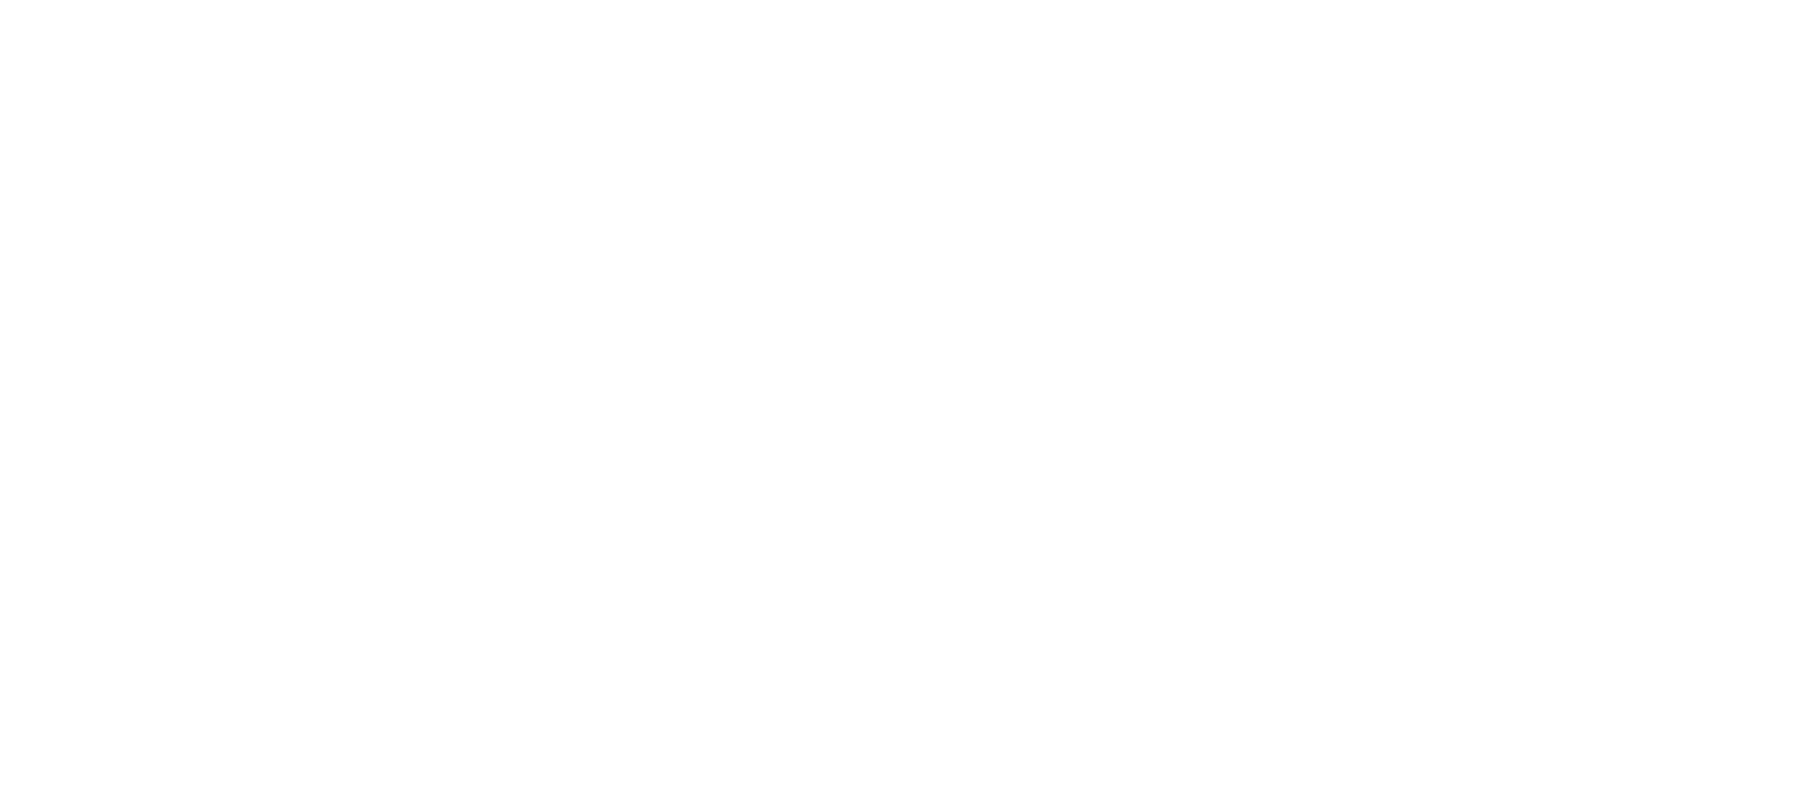 Faye's Diamond Mine - fine jewelry in Clinton, AR